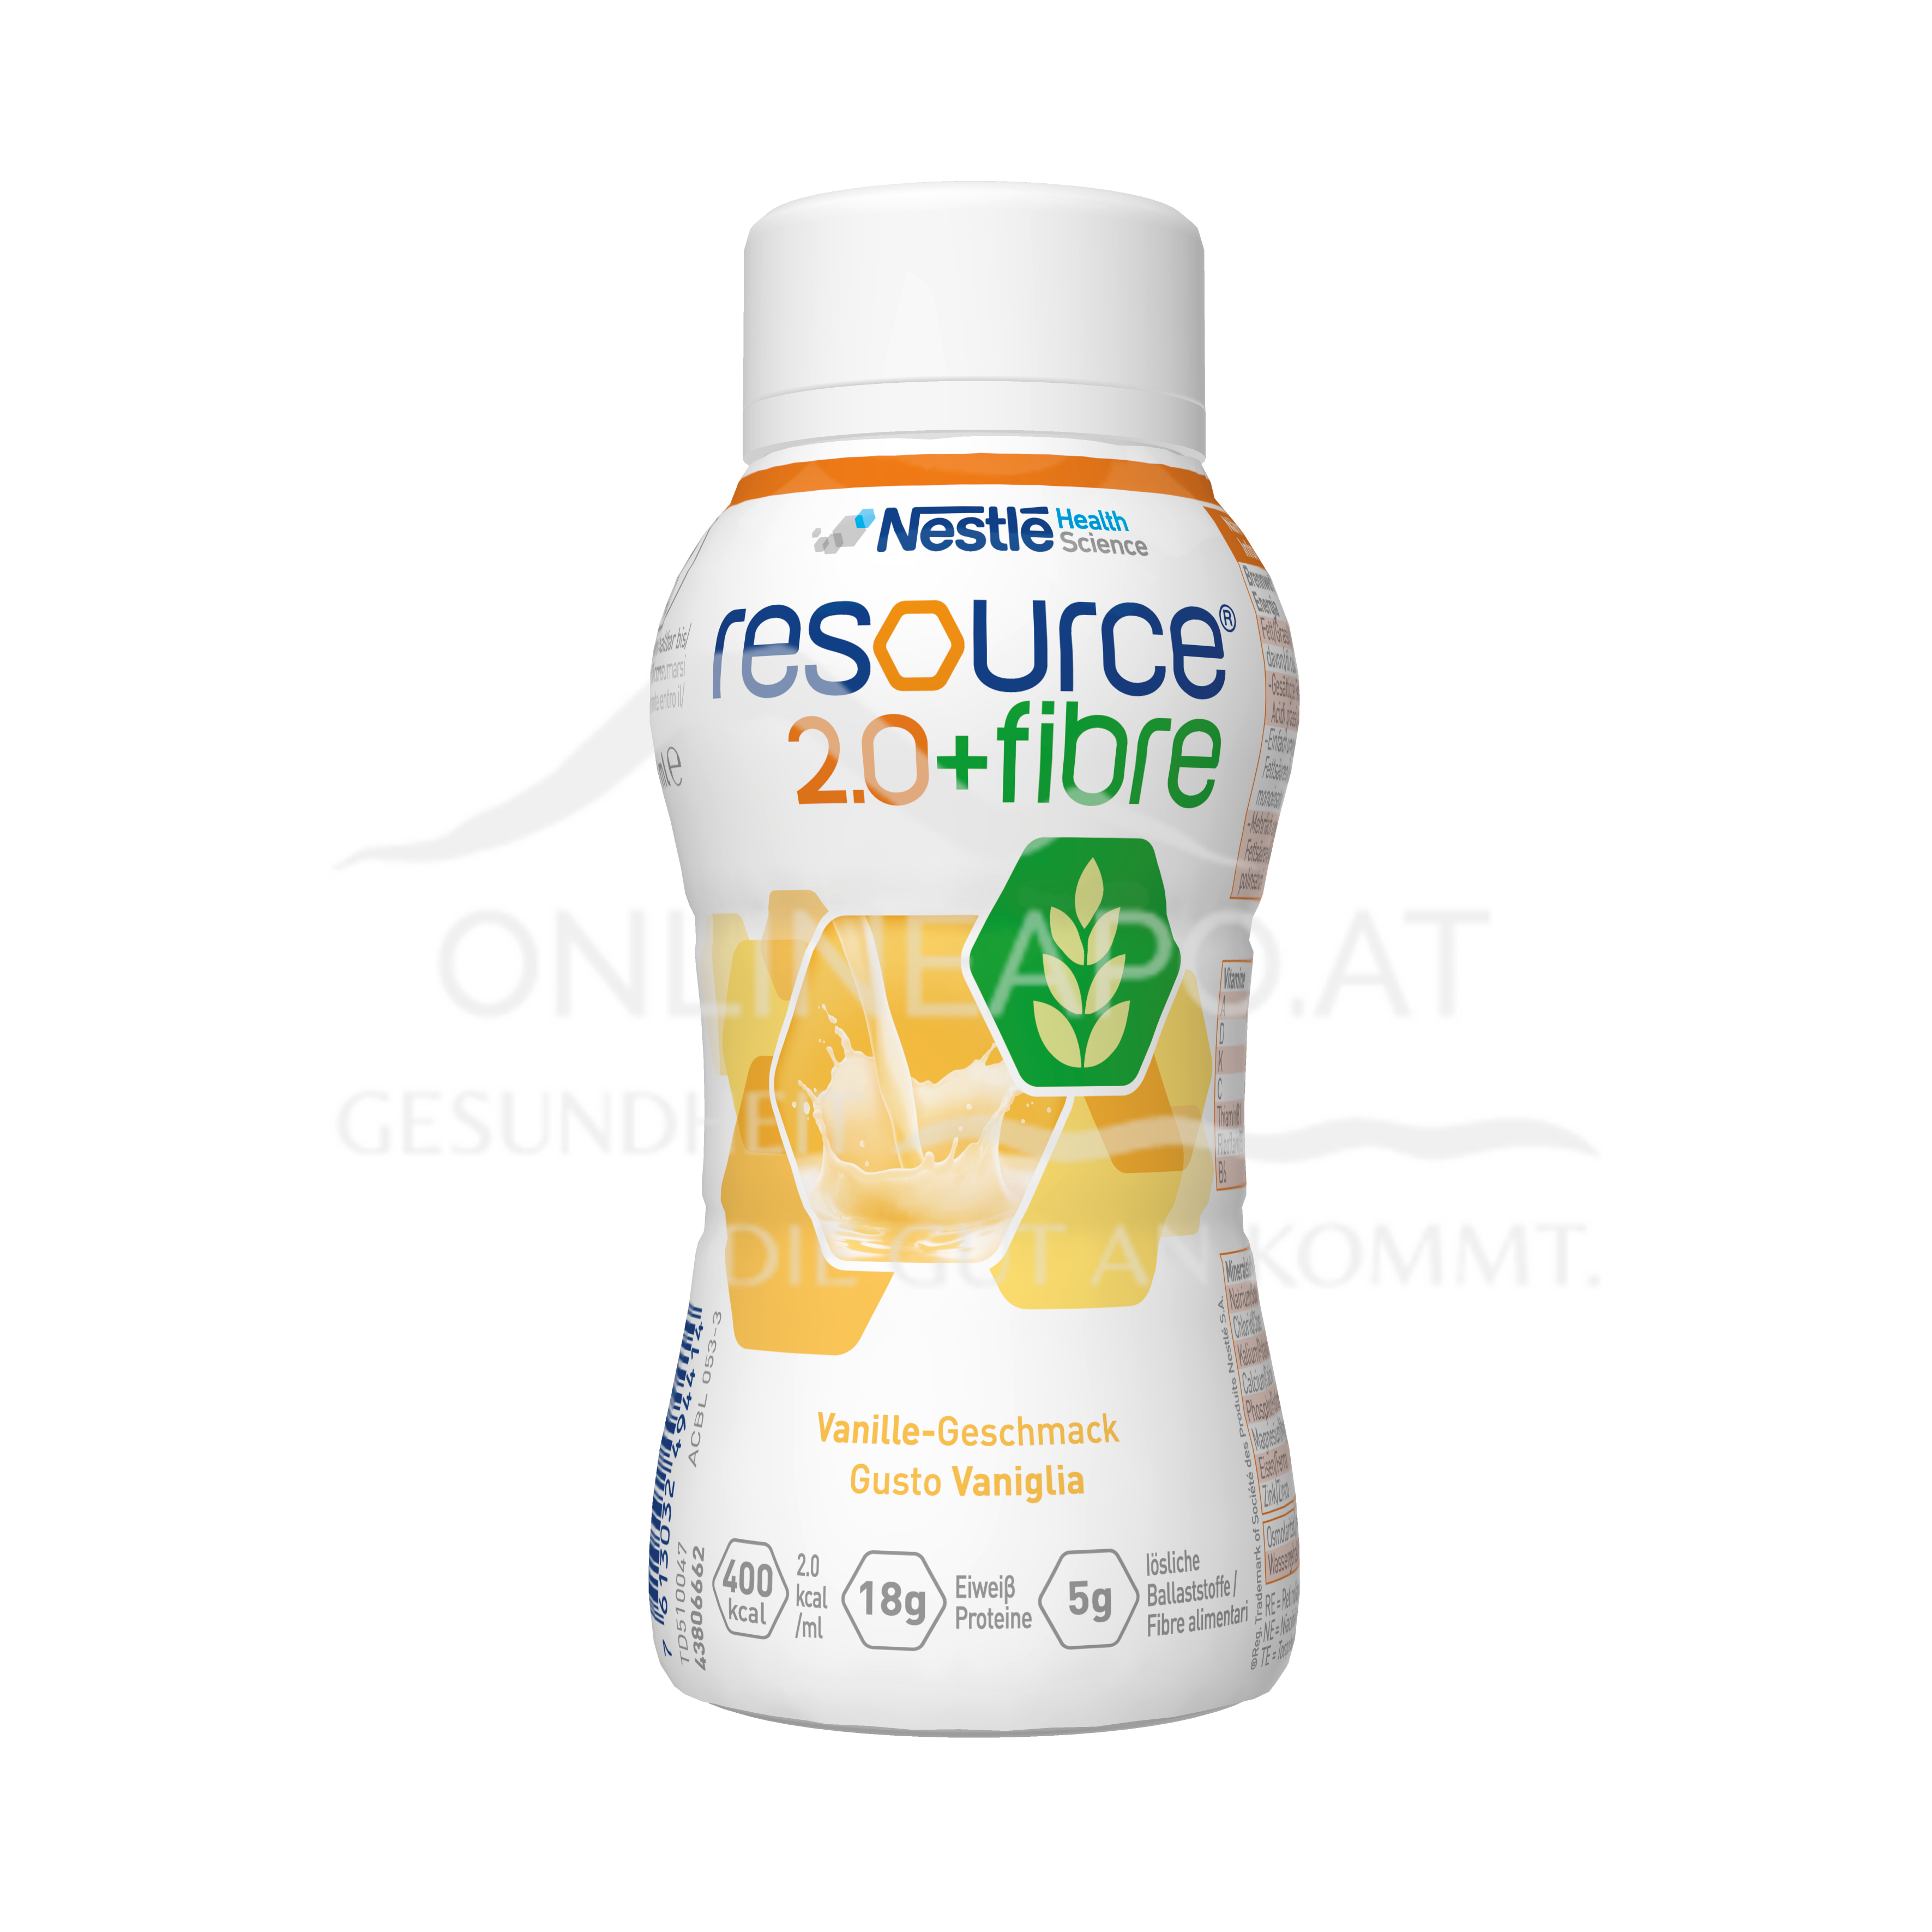 Resource® 2.0 + fibre Vanille